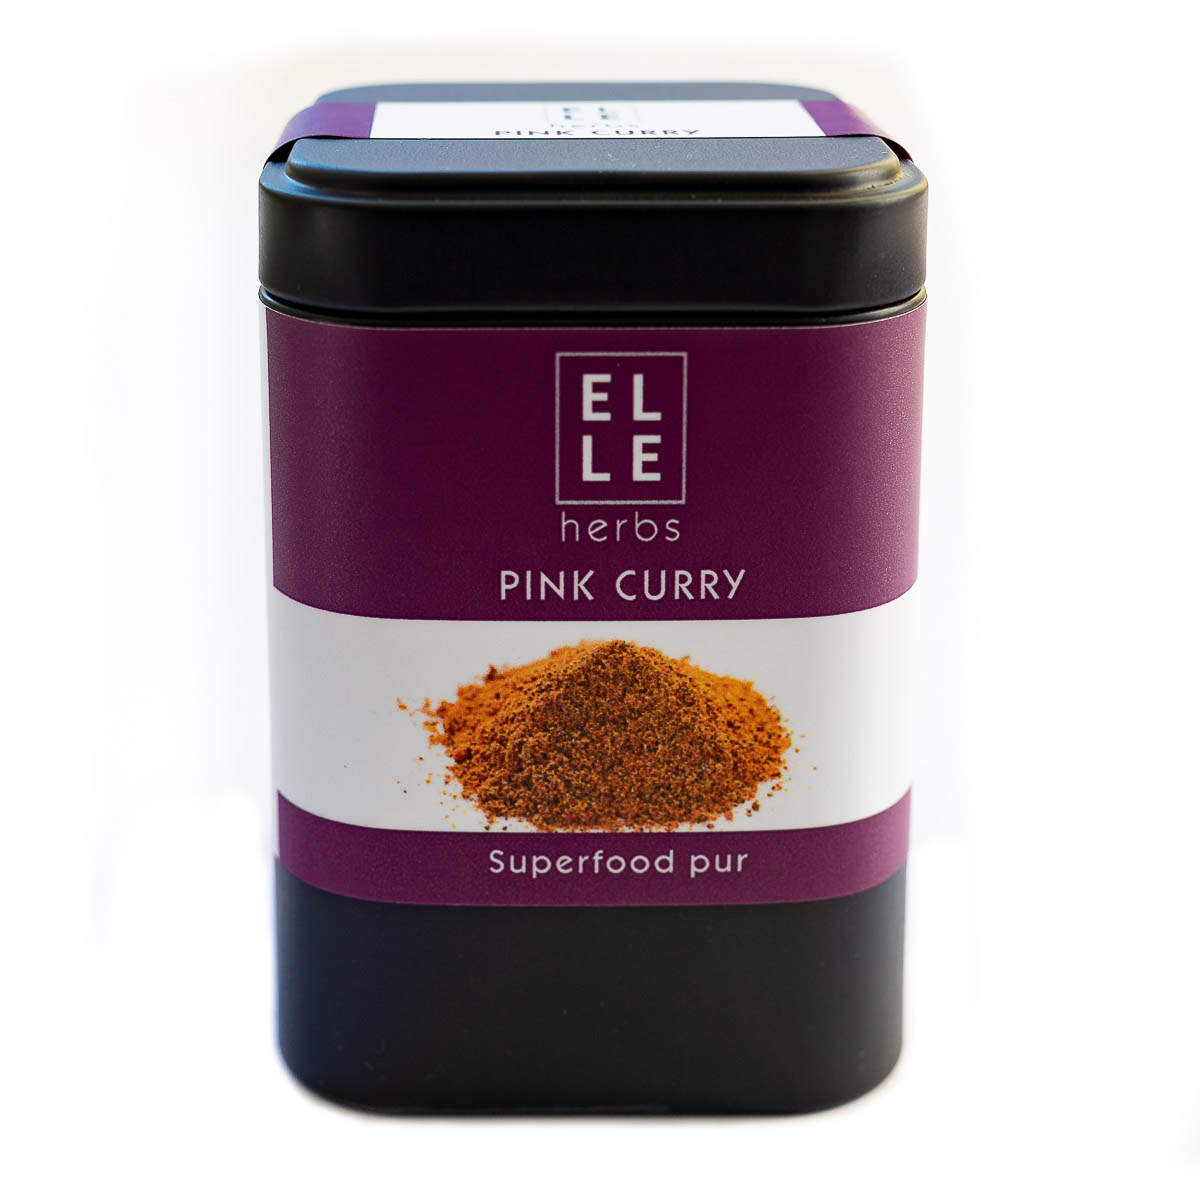 Pink Superfood Curry Gewuerzmischung Elle Herbs